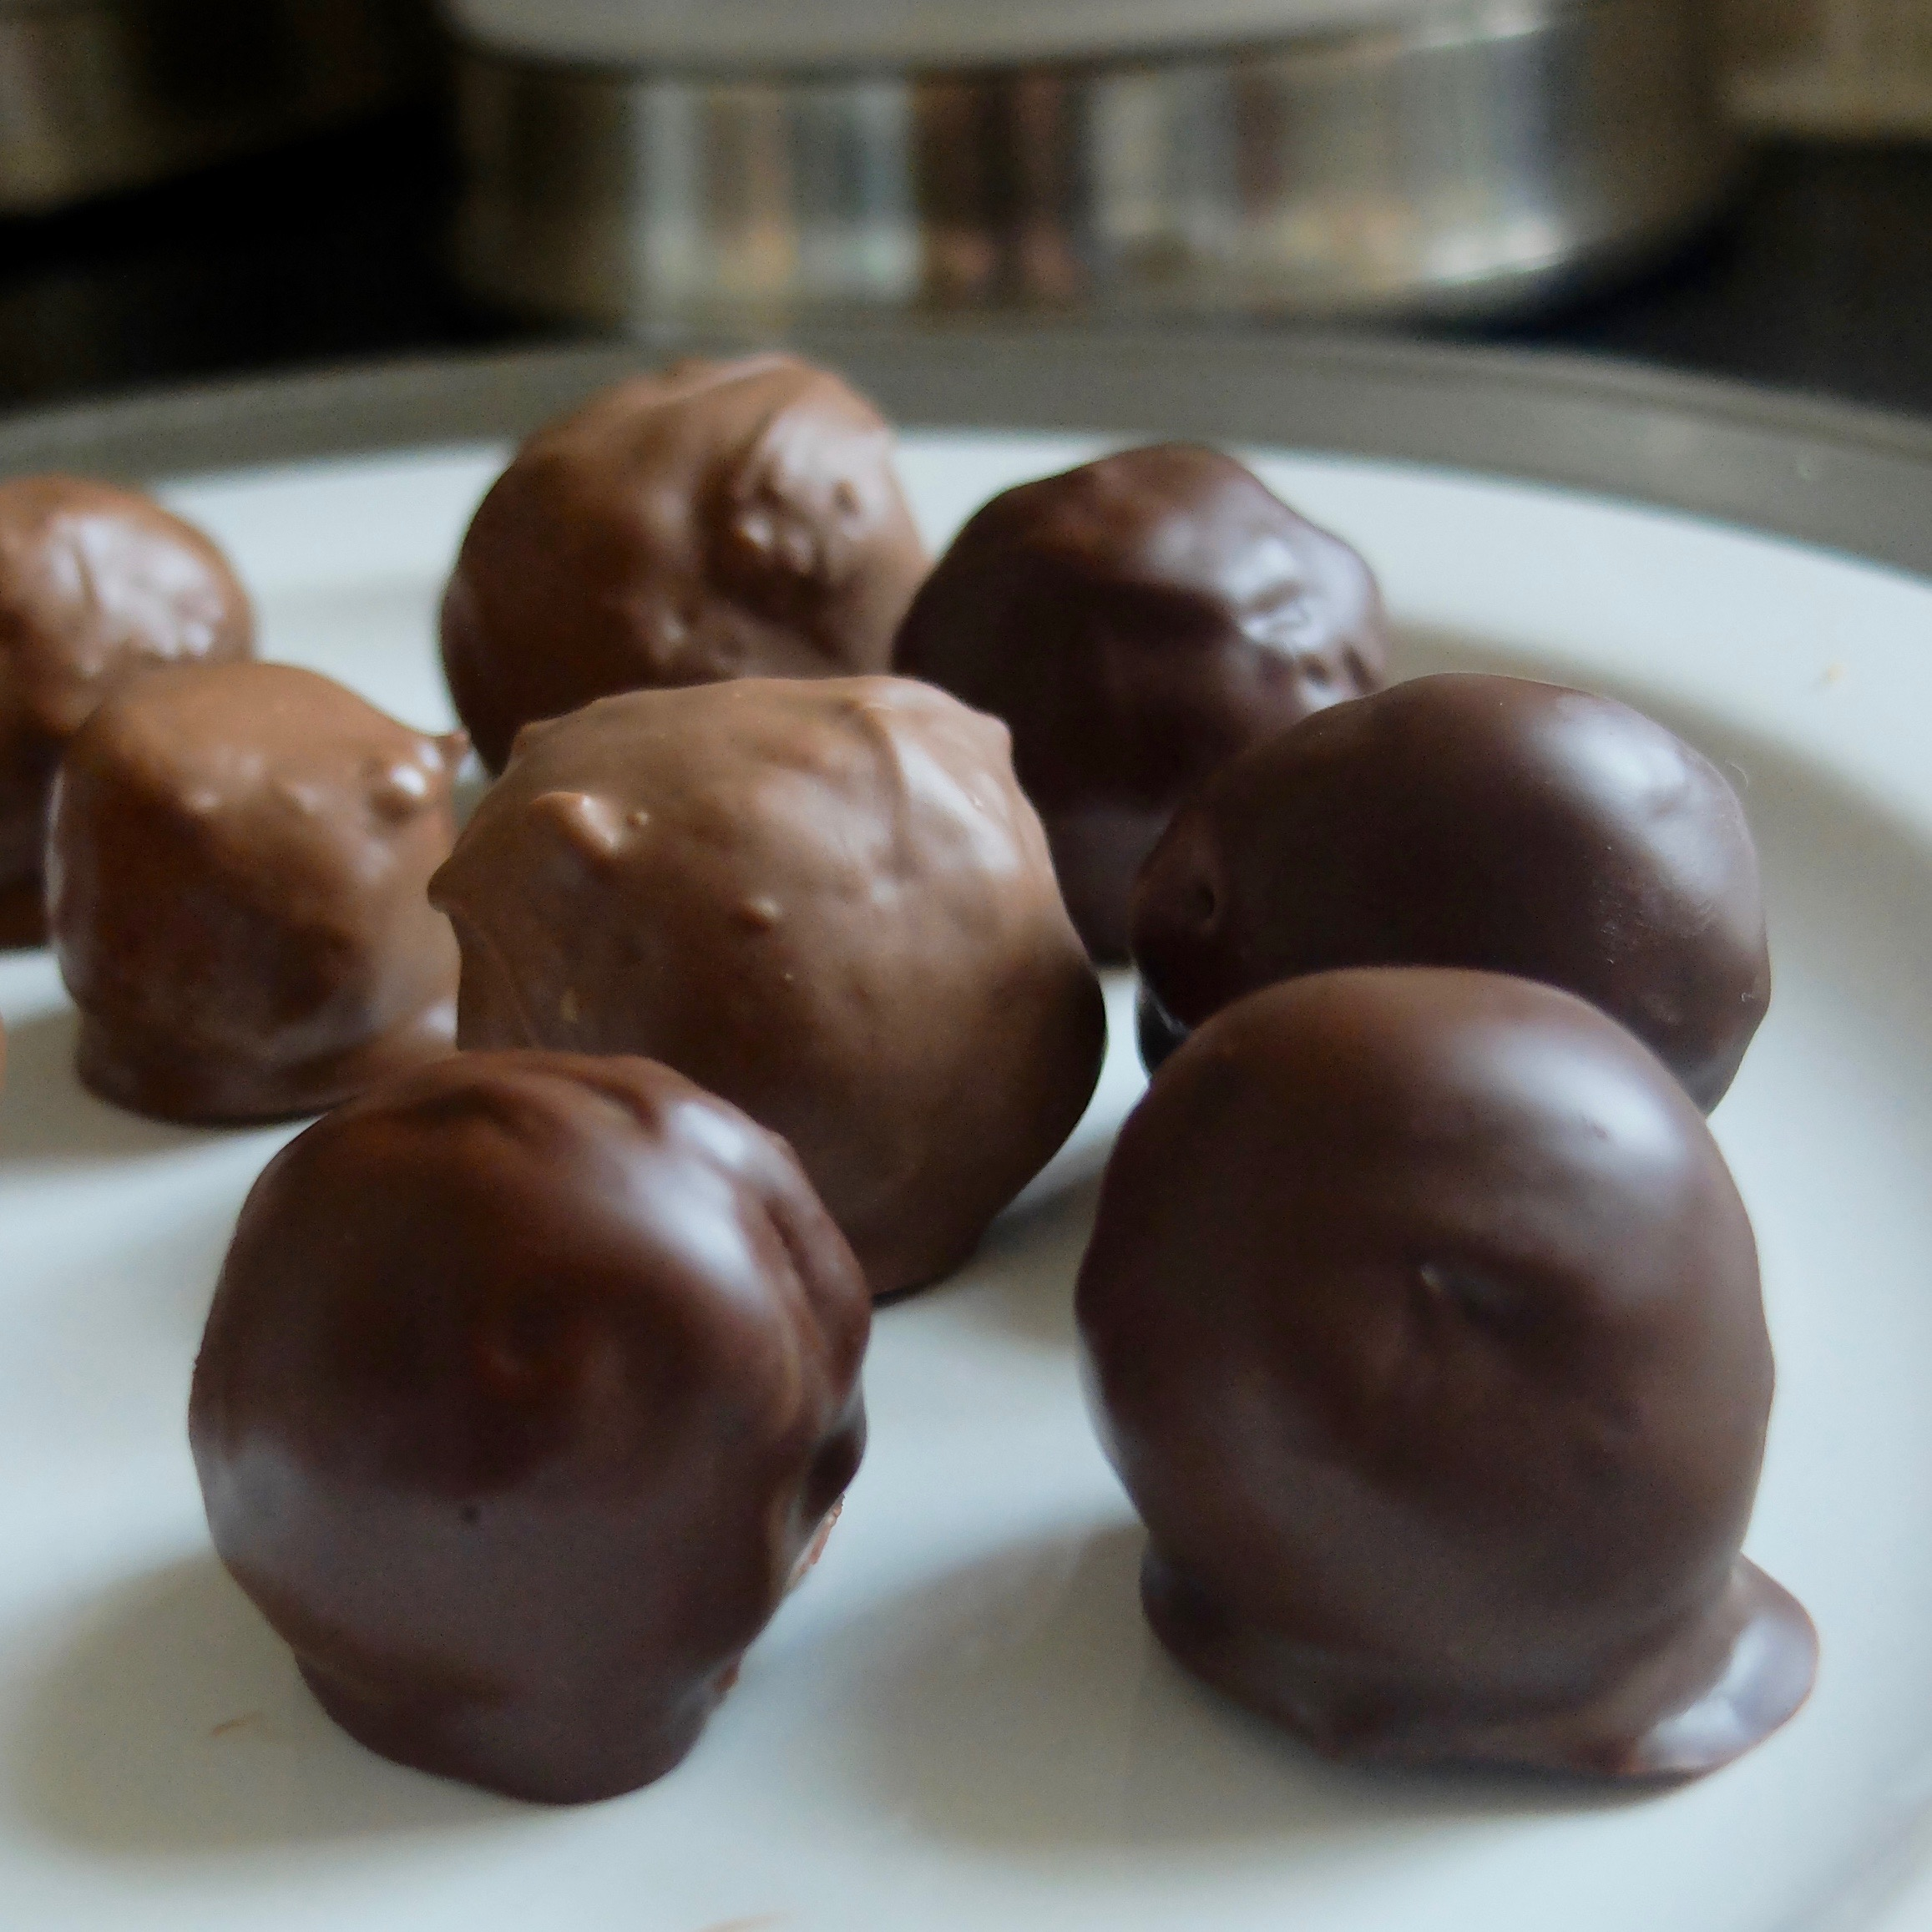 peanut butter balls (Note the foot on the one at the front where the chocolate was too hot)